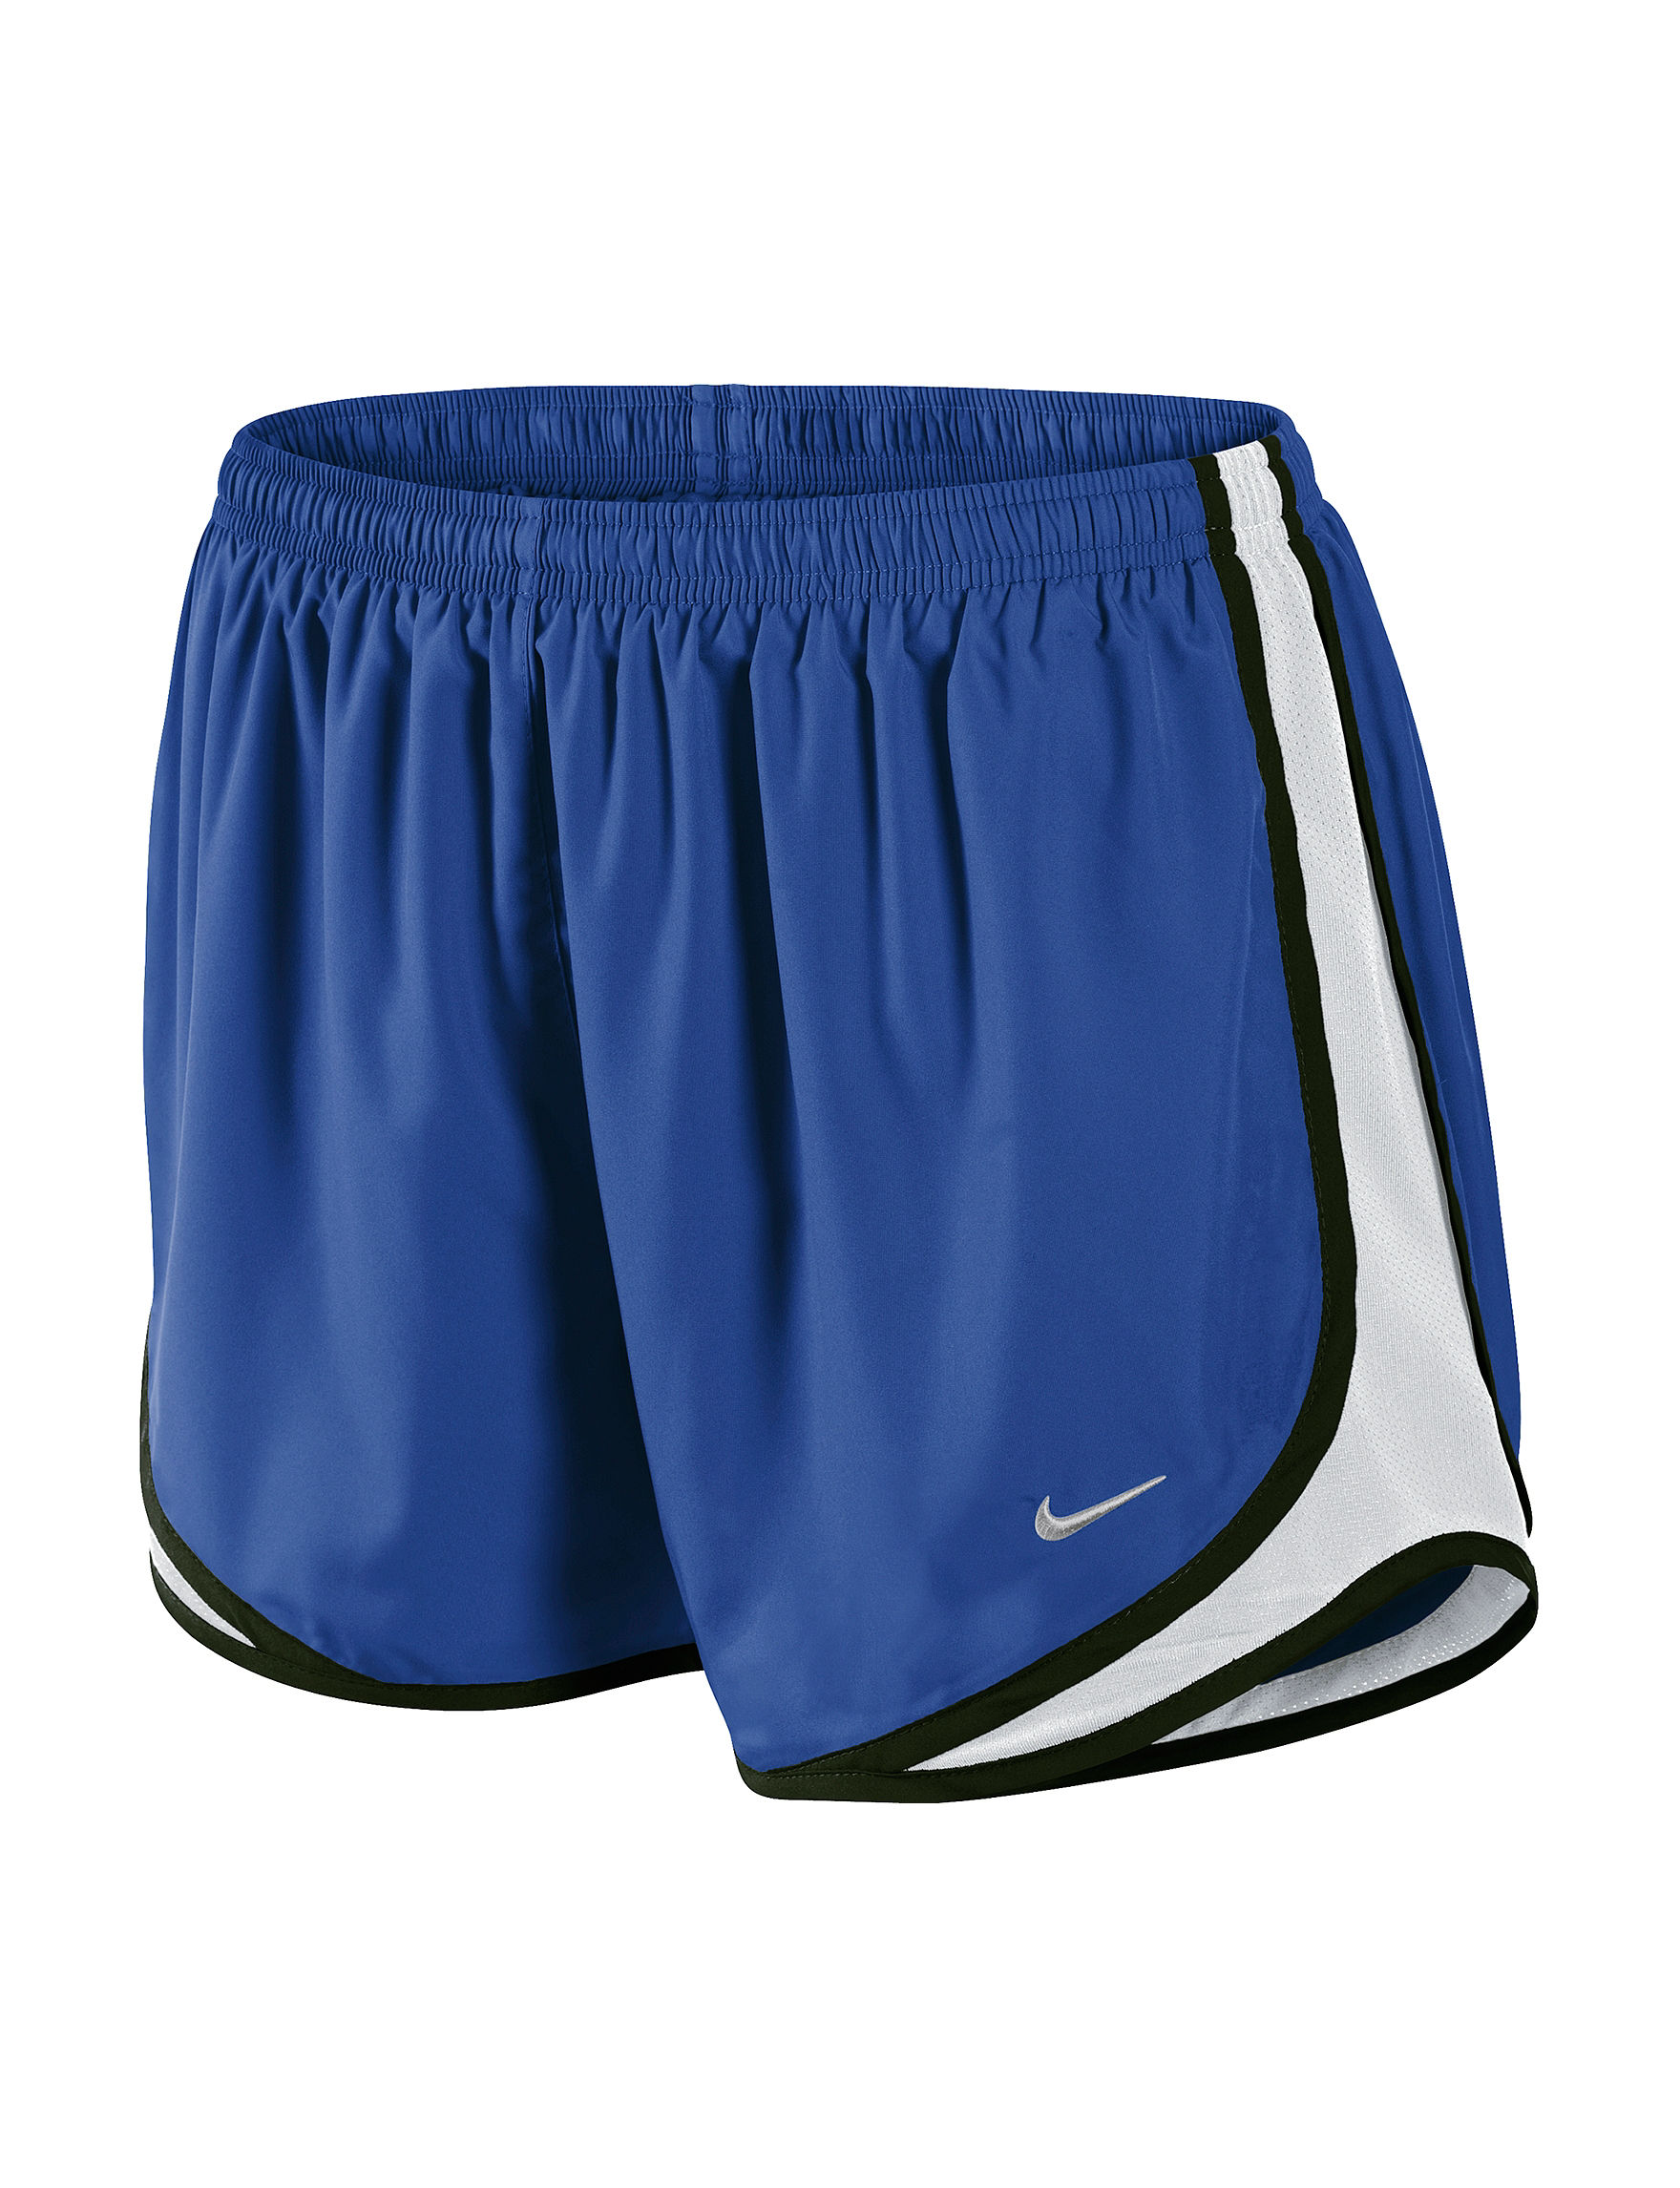 Nike Blue Active